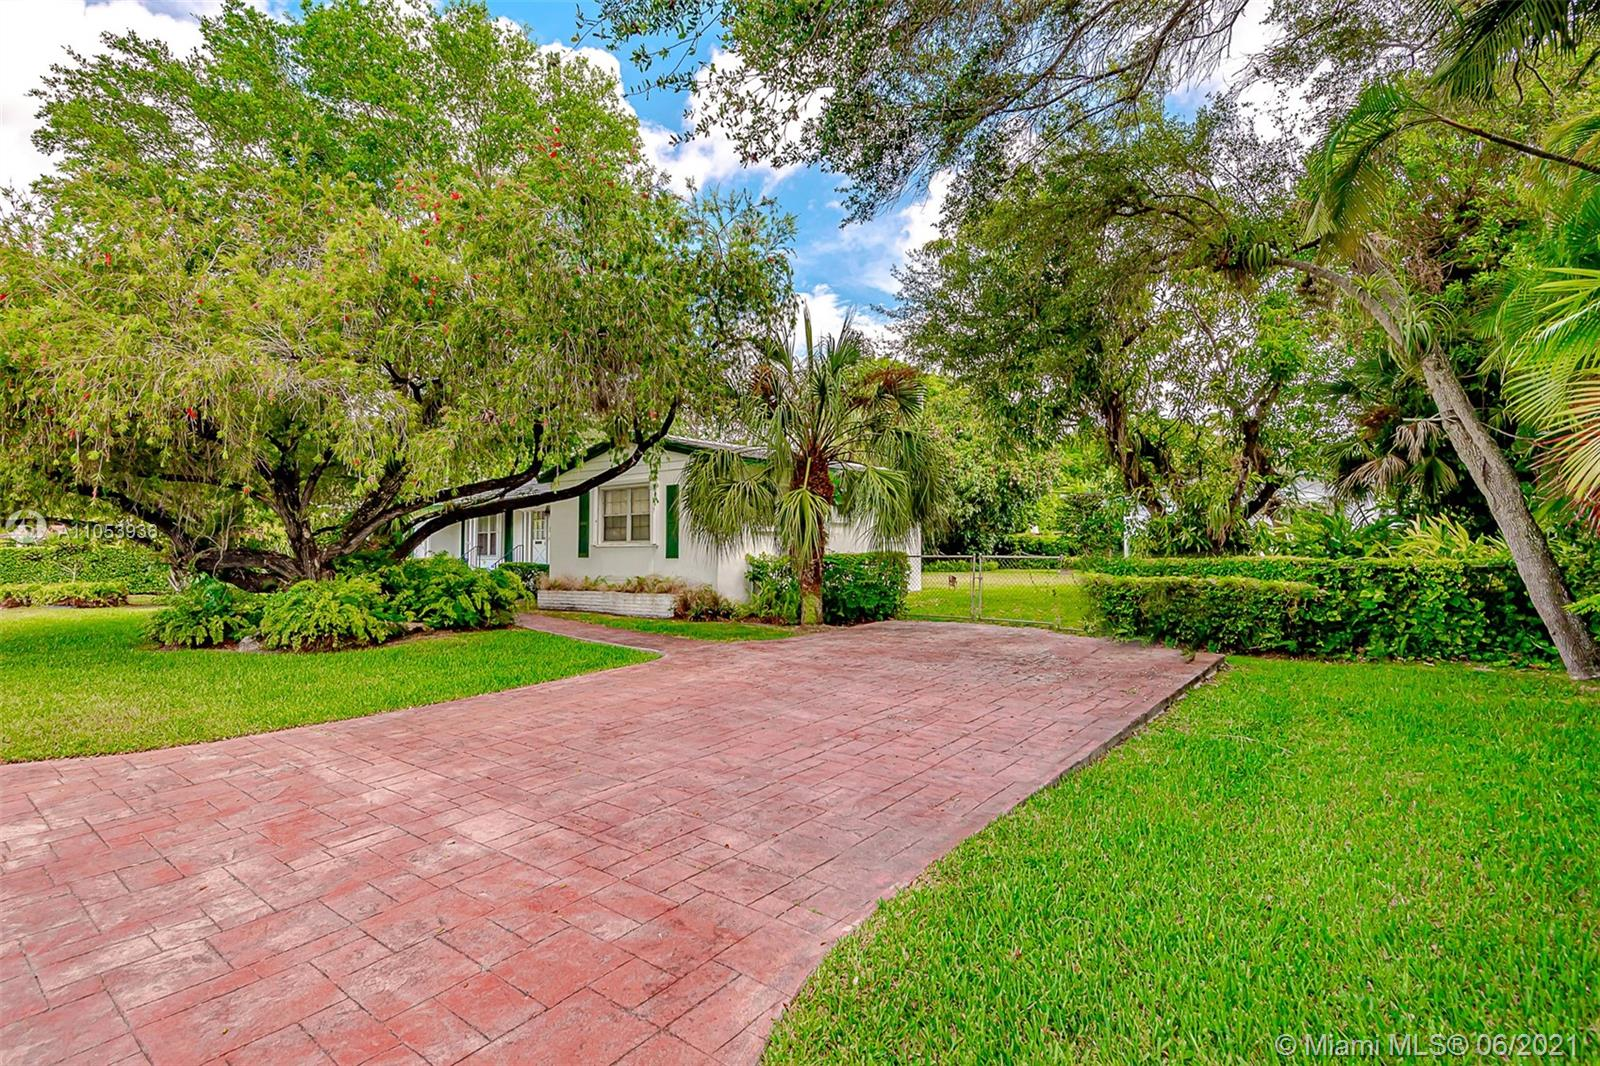 Great location and an oversized lot in South Miami. This home is ready to be fully renovated or torn down and replaced with your dream home.